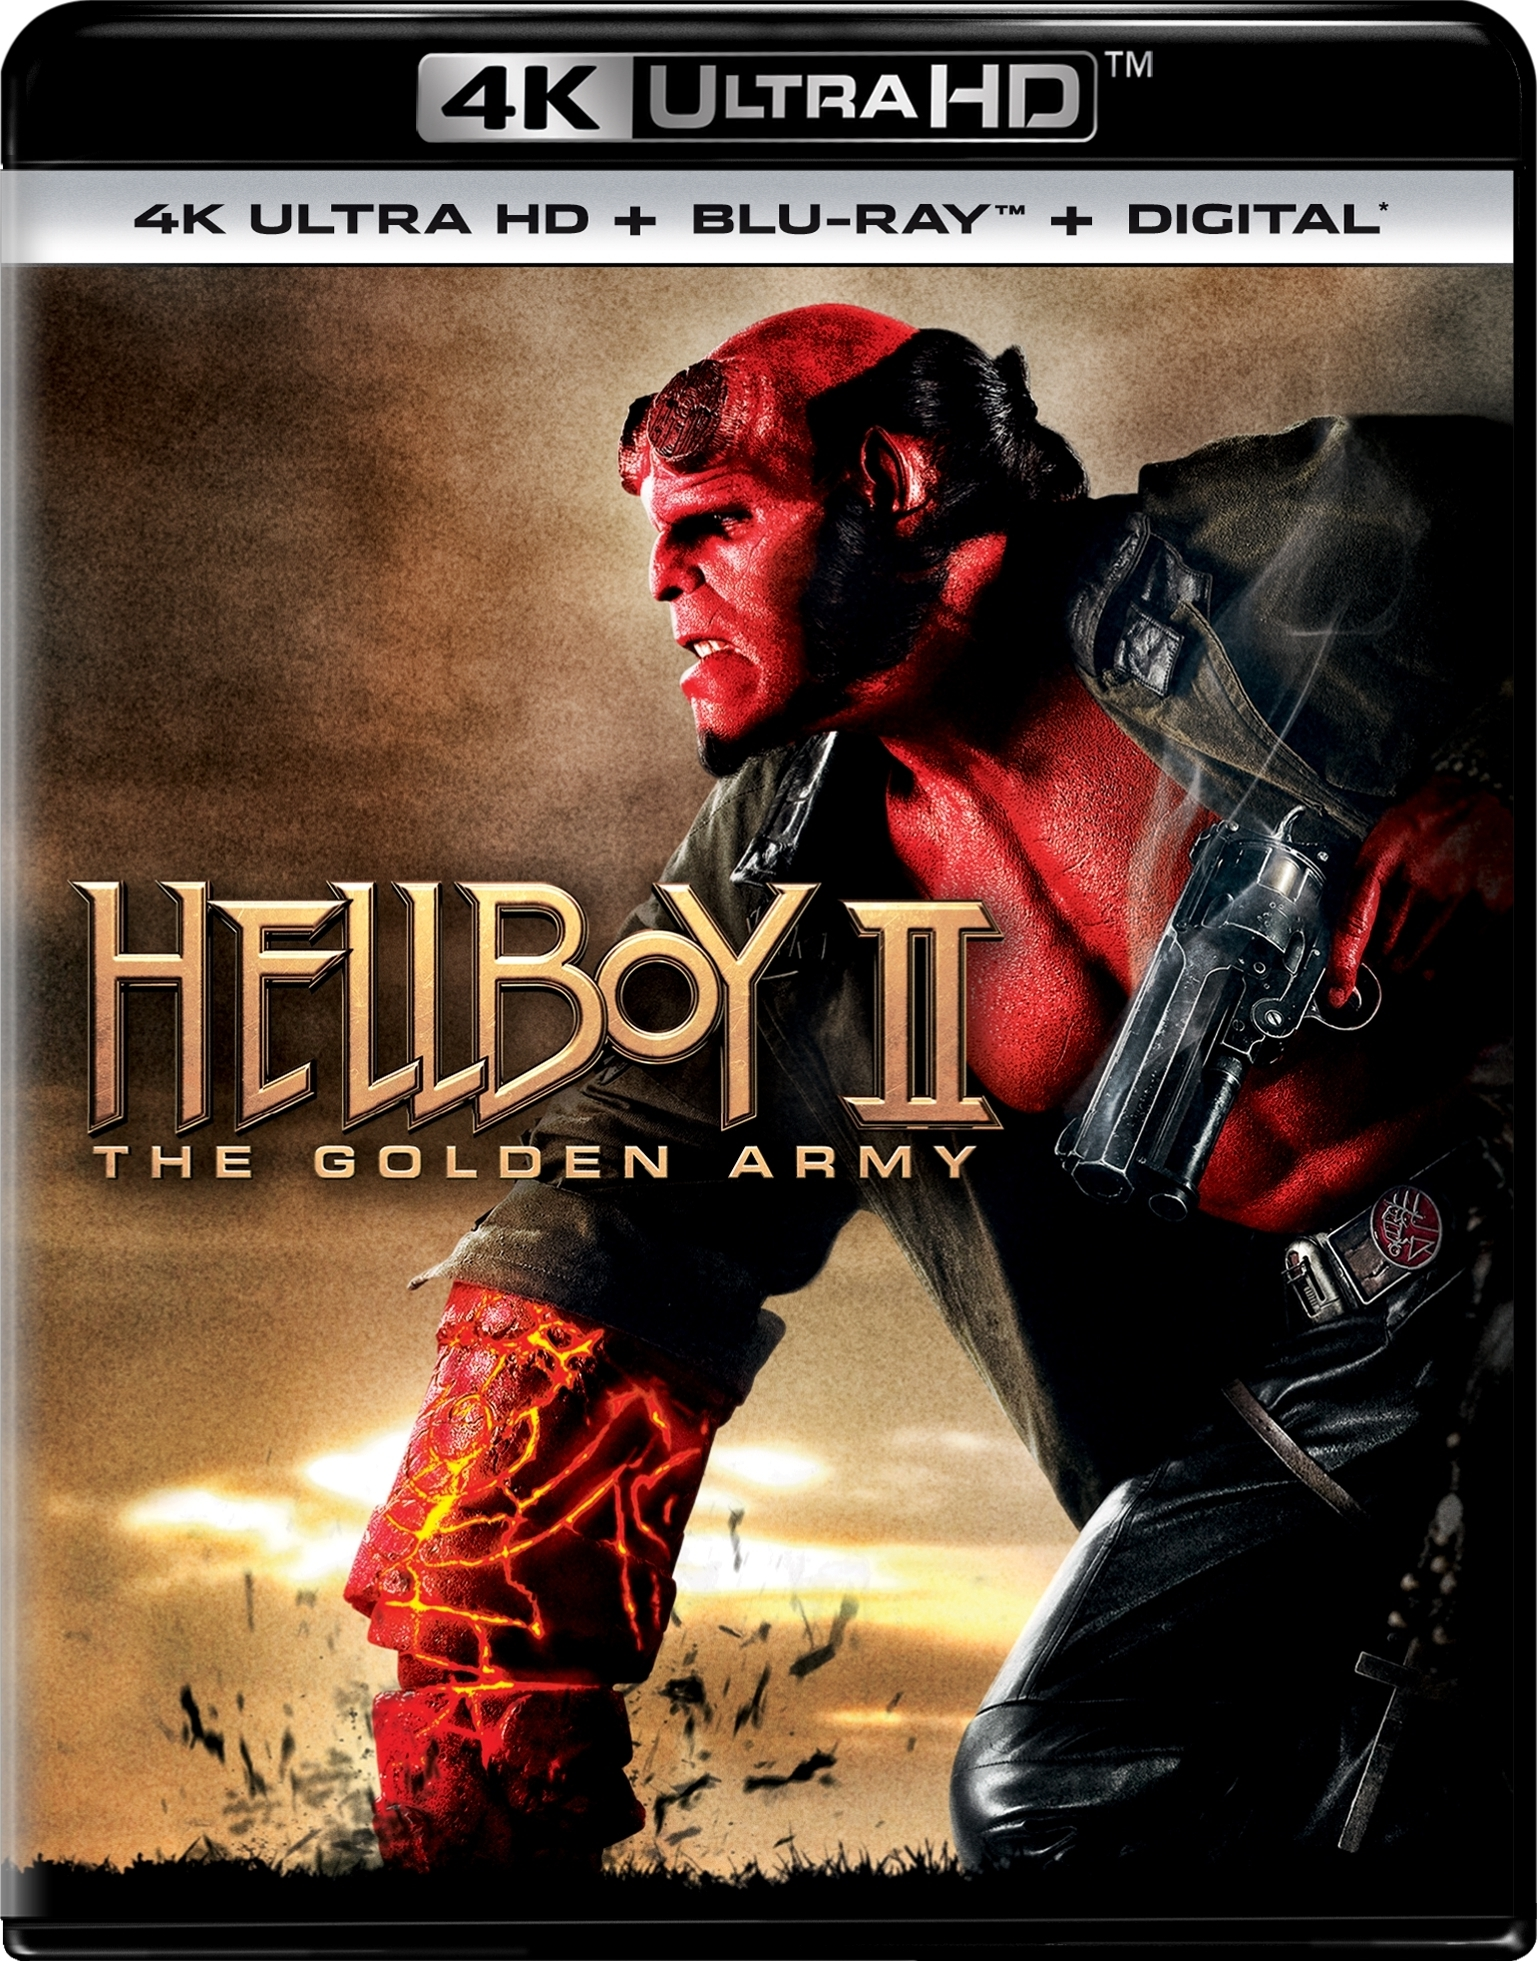 Hellboy 2: The Golden Army (4K Ultra HD Blu-ray)(Pre-order / May 7)